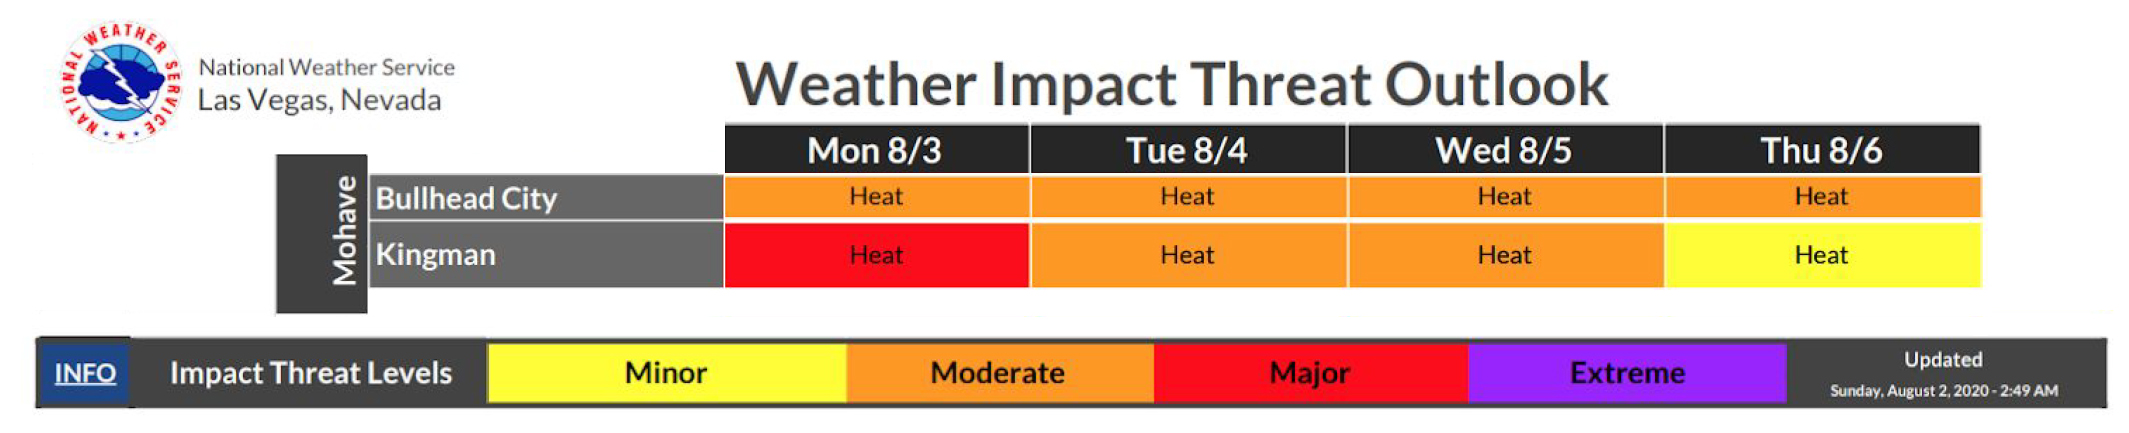 National Weather Service, Las Vegas Nevada. Weather Impact Threat Outlook. Mohave Bullhead City: Mon 8/3, Tue 8/4, Wed 8/5, and Thu 8/6= moderate heat. Kingman: Mon 8/3= Major heat. Tue 8/4 and Wed 8/5= Moderate heat. Thu 8/6= Minor heat. Info: Impact Threat Levels. Minor, Moderate, Major, Extreme. Updated Sunday August 2, 2020, 2:49 a.m.